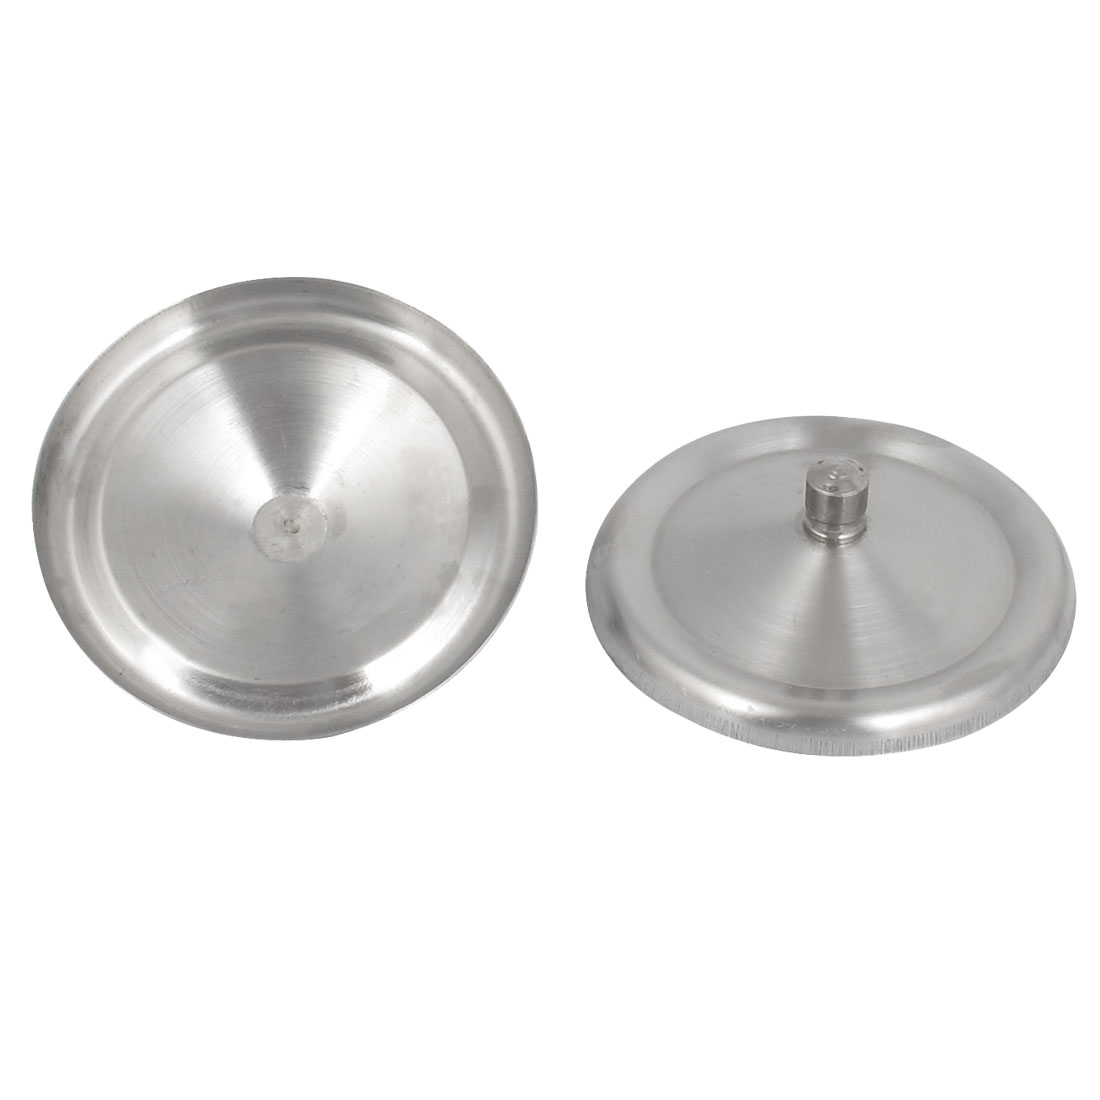 8cm Dia Round Shape Home Sealed Drink Cup Mug Lid Cap Cover Silver Tone 2Pcs